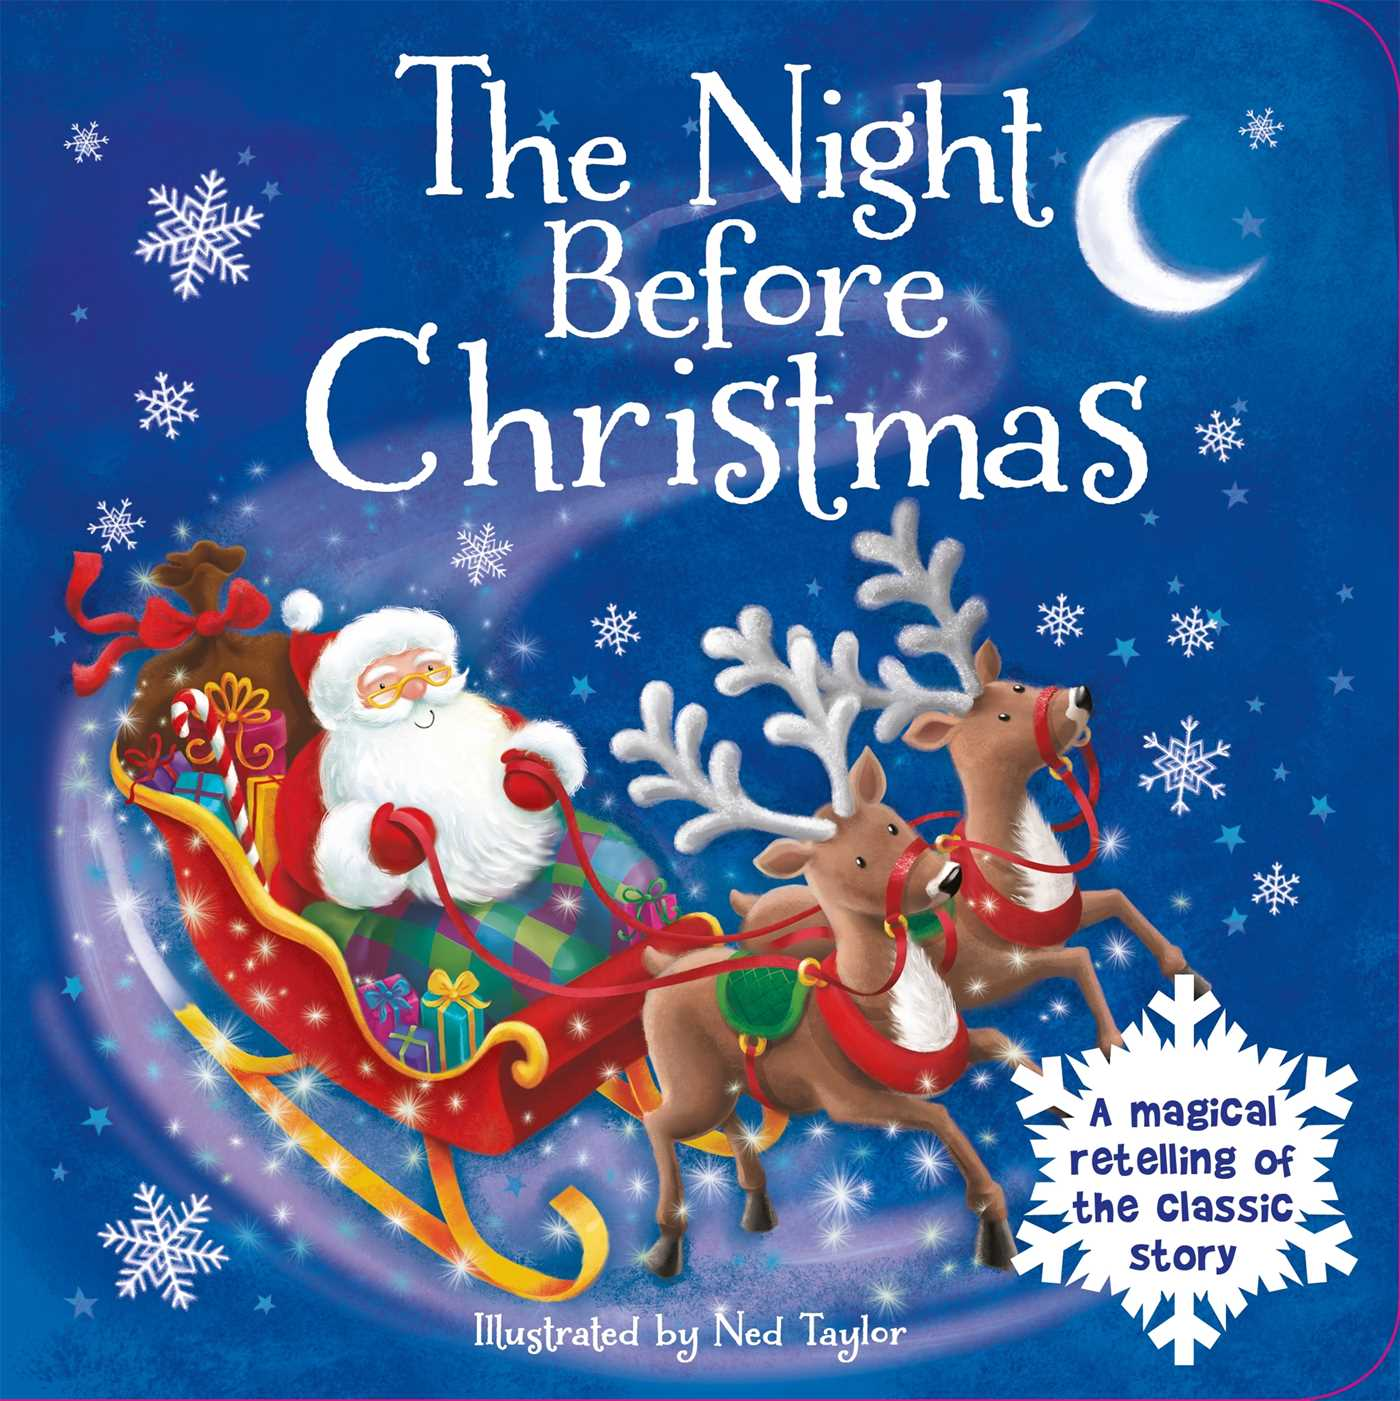 the night before christmas 9781785575150 hr